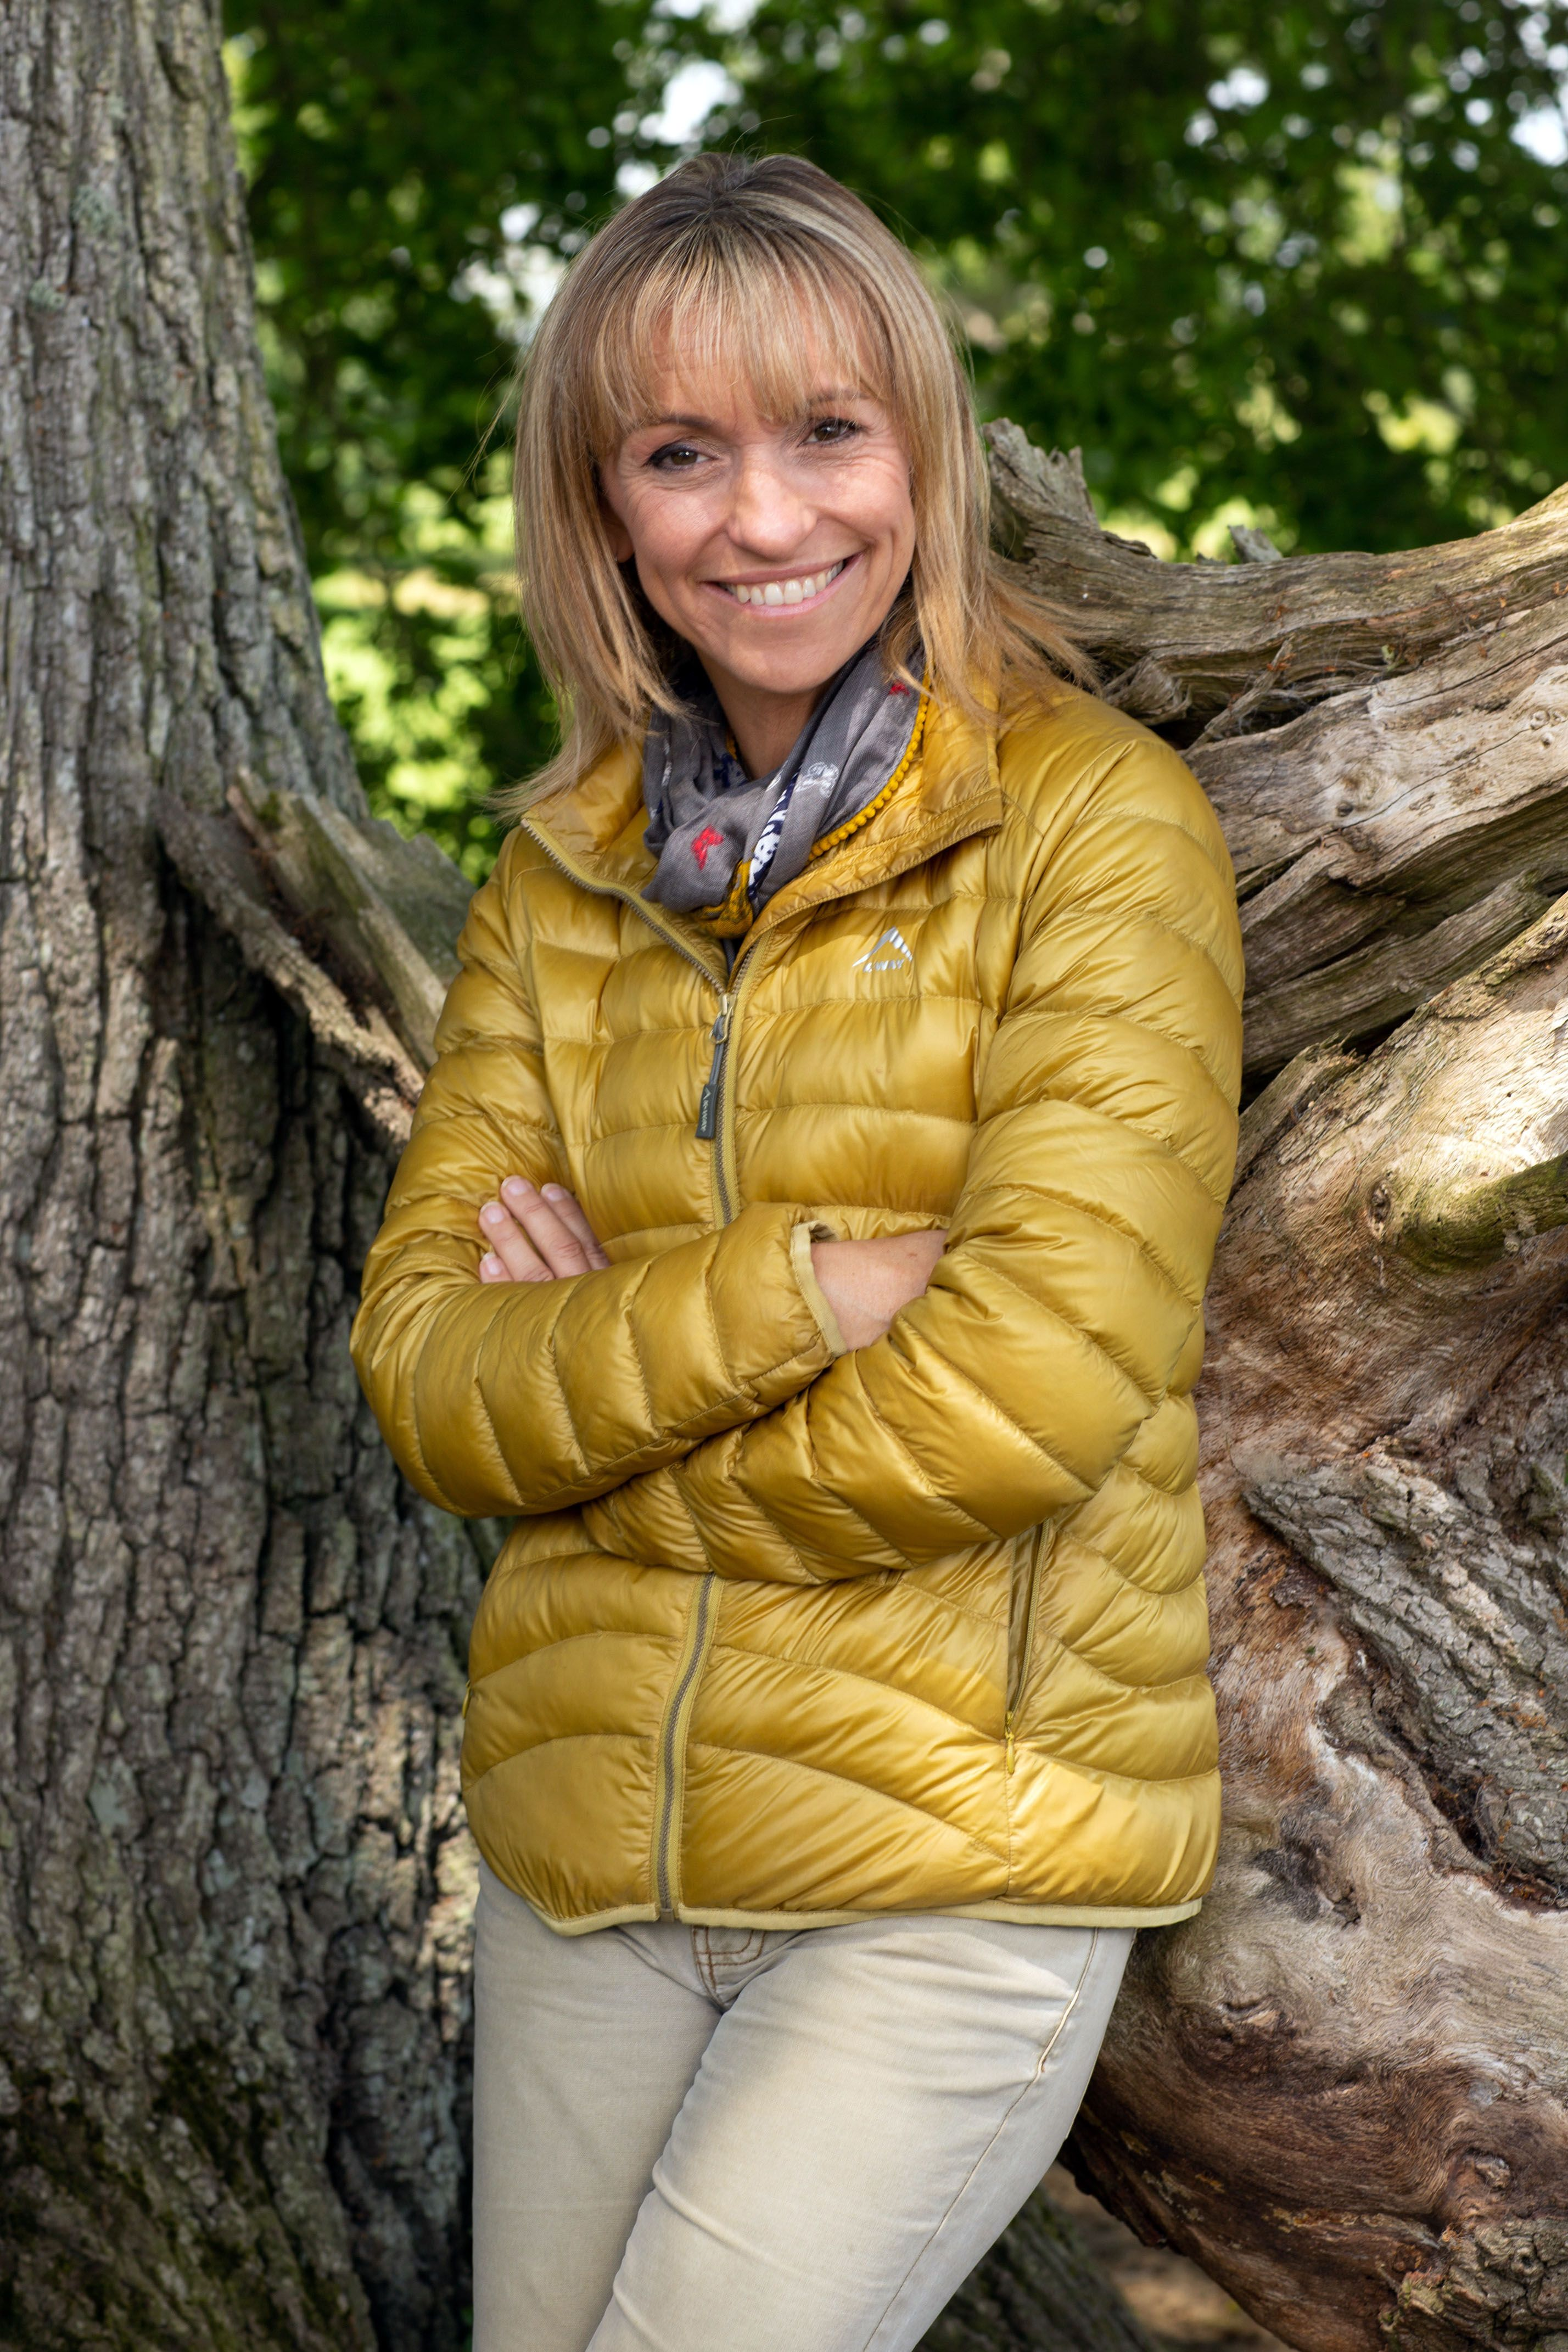 Springwatch presenter Michaela Strachan on what we need to do to help the planet